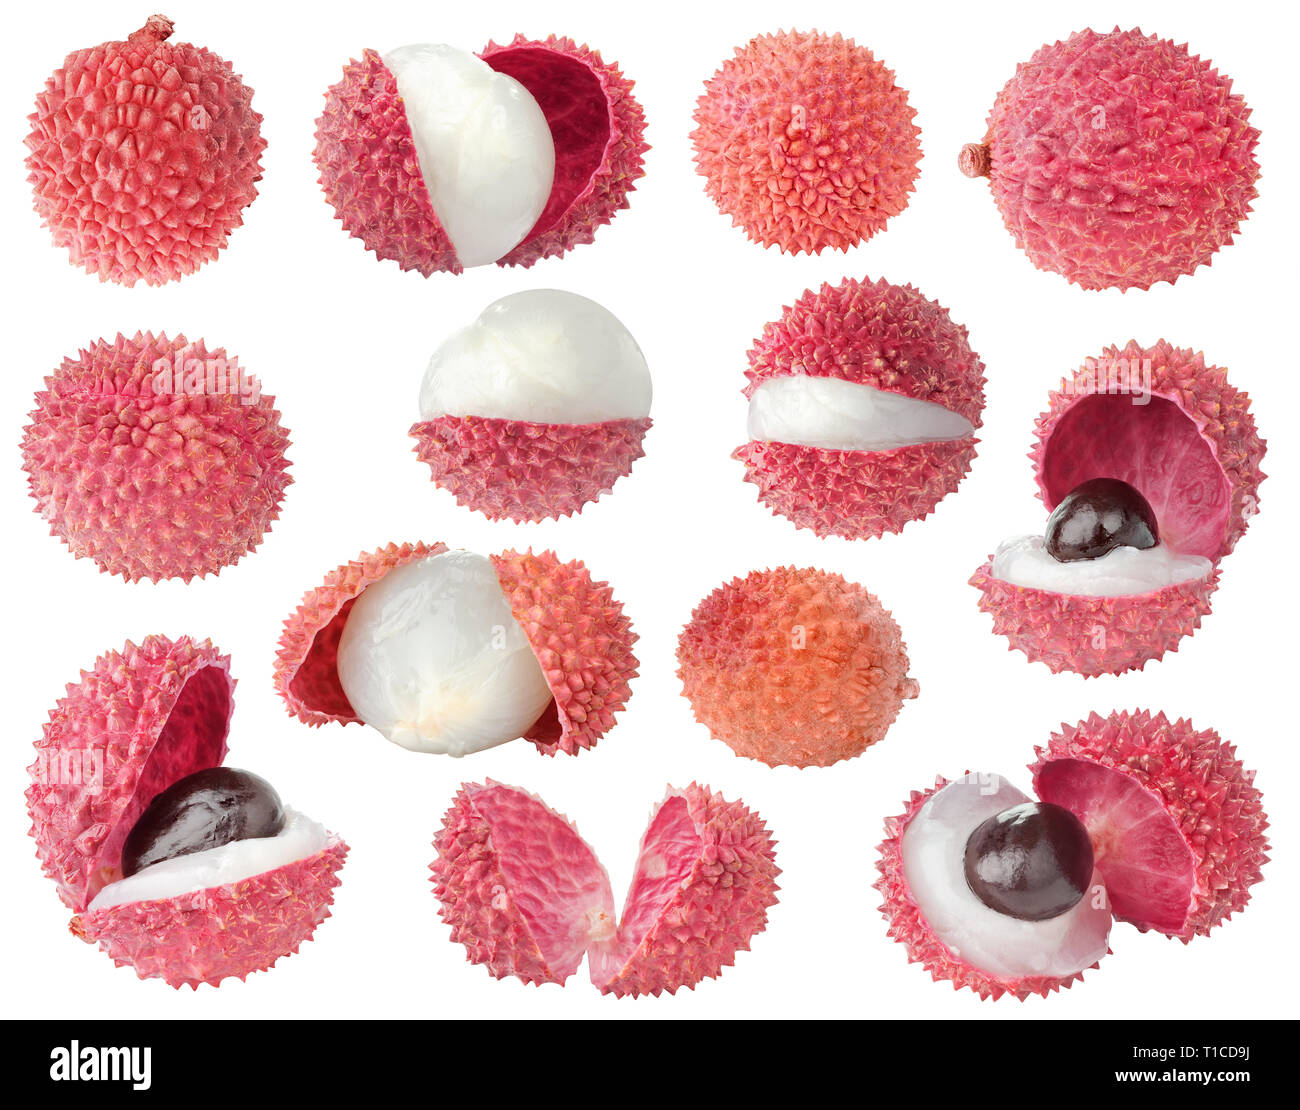 Isolated lychee. Collection of lichee fruits of different shapes, whole and cut, isolated on white background with clipping path Stock Photo